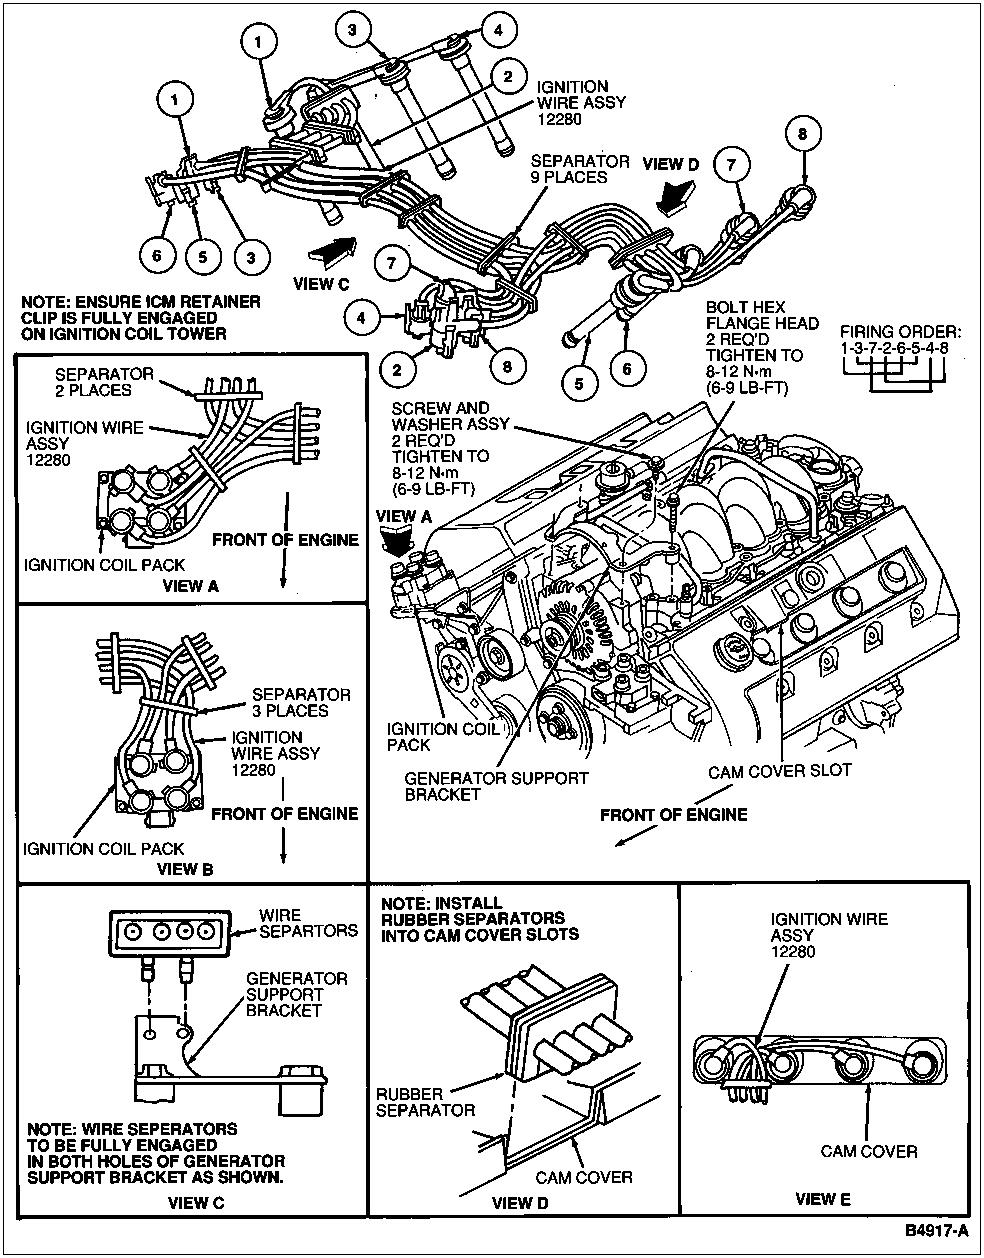 [WRG-5324] 2000 Lincoln Continental Wiring Diagram